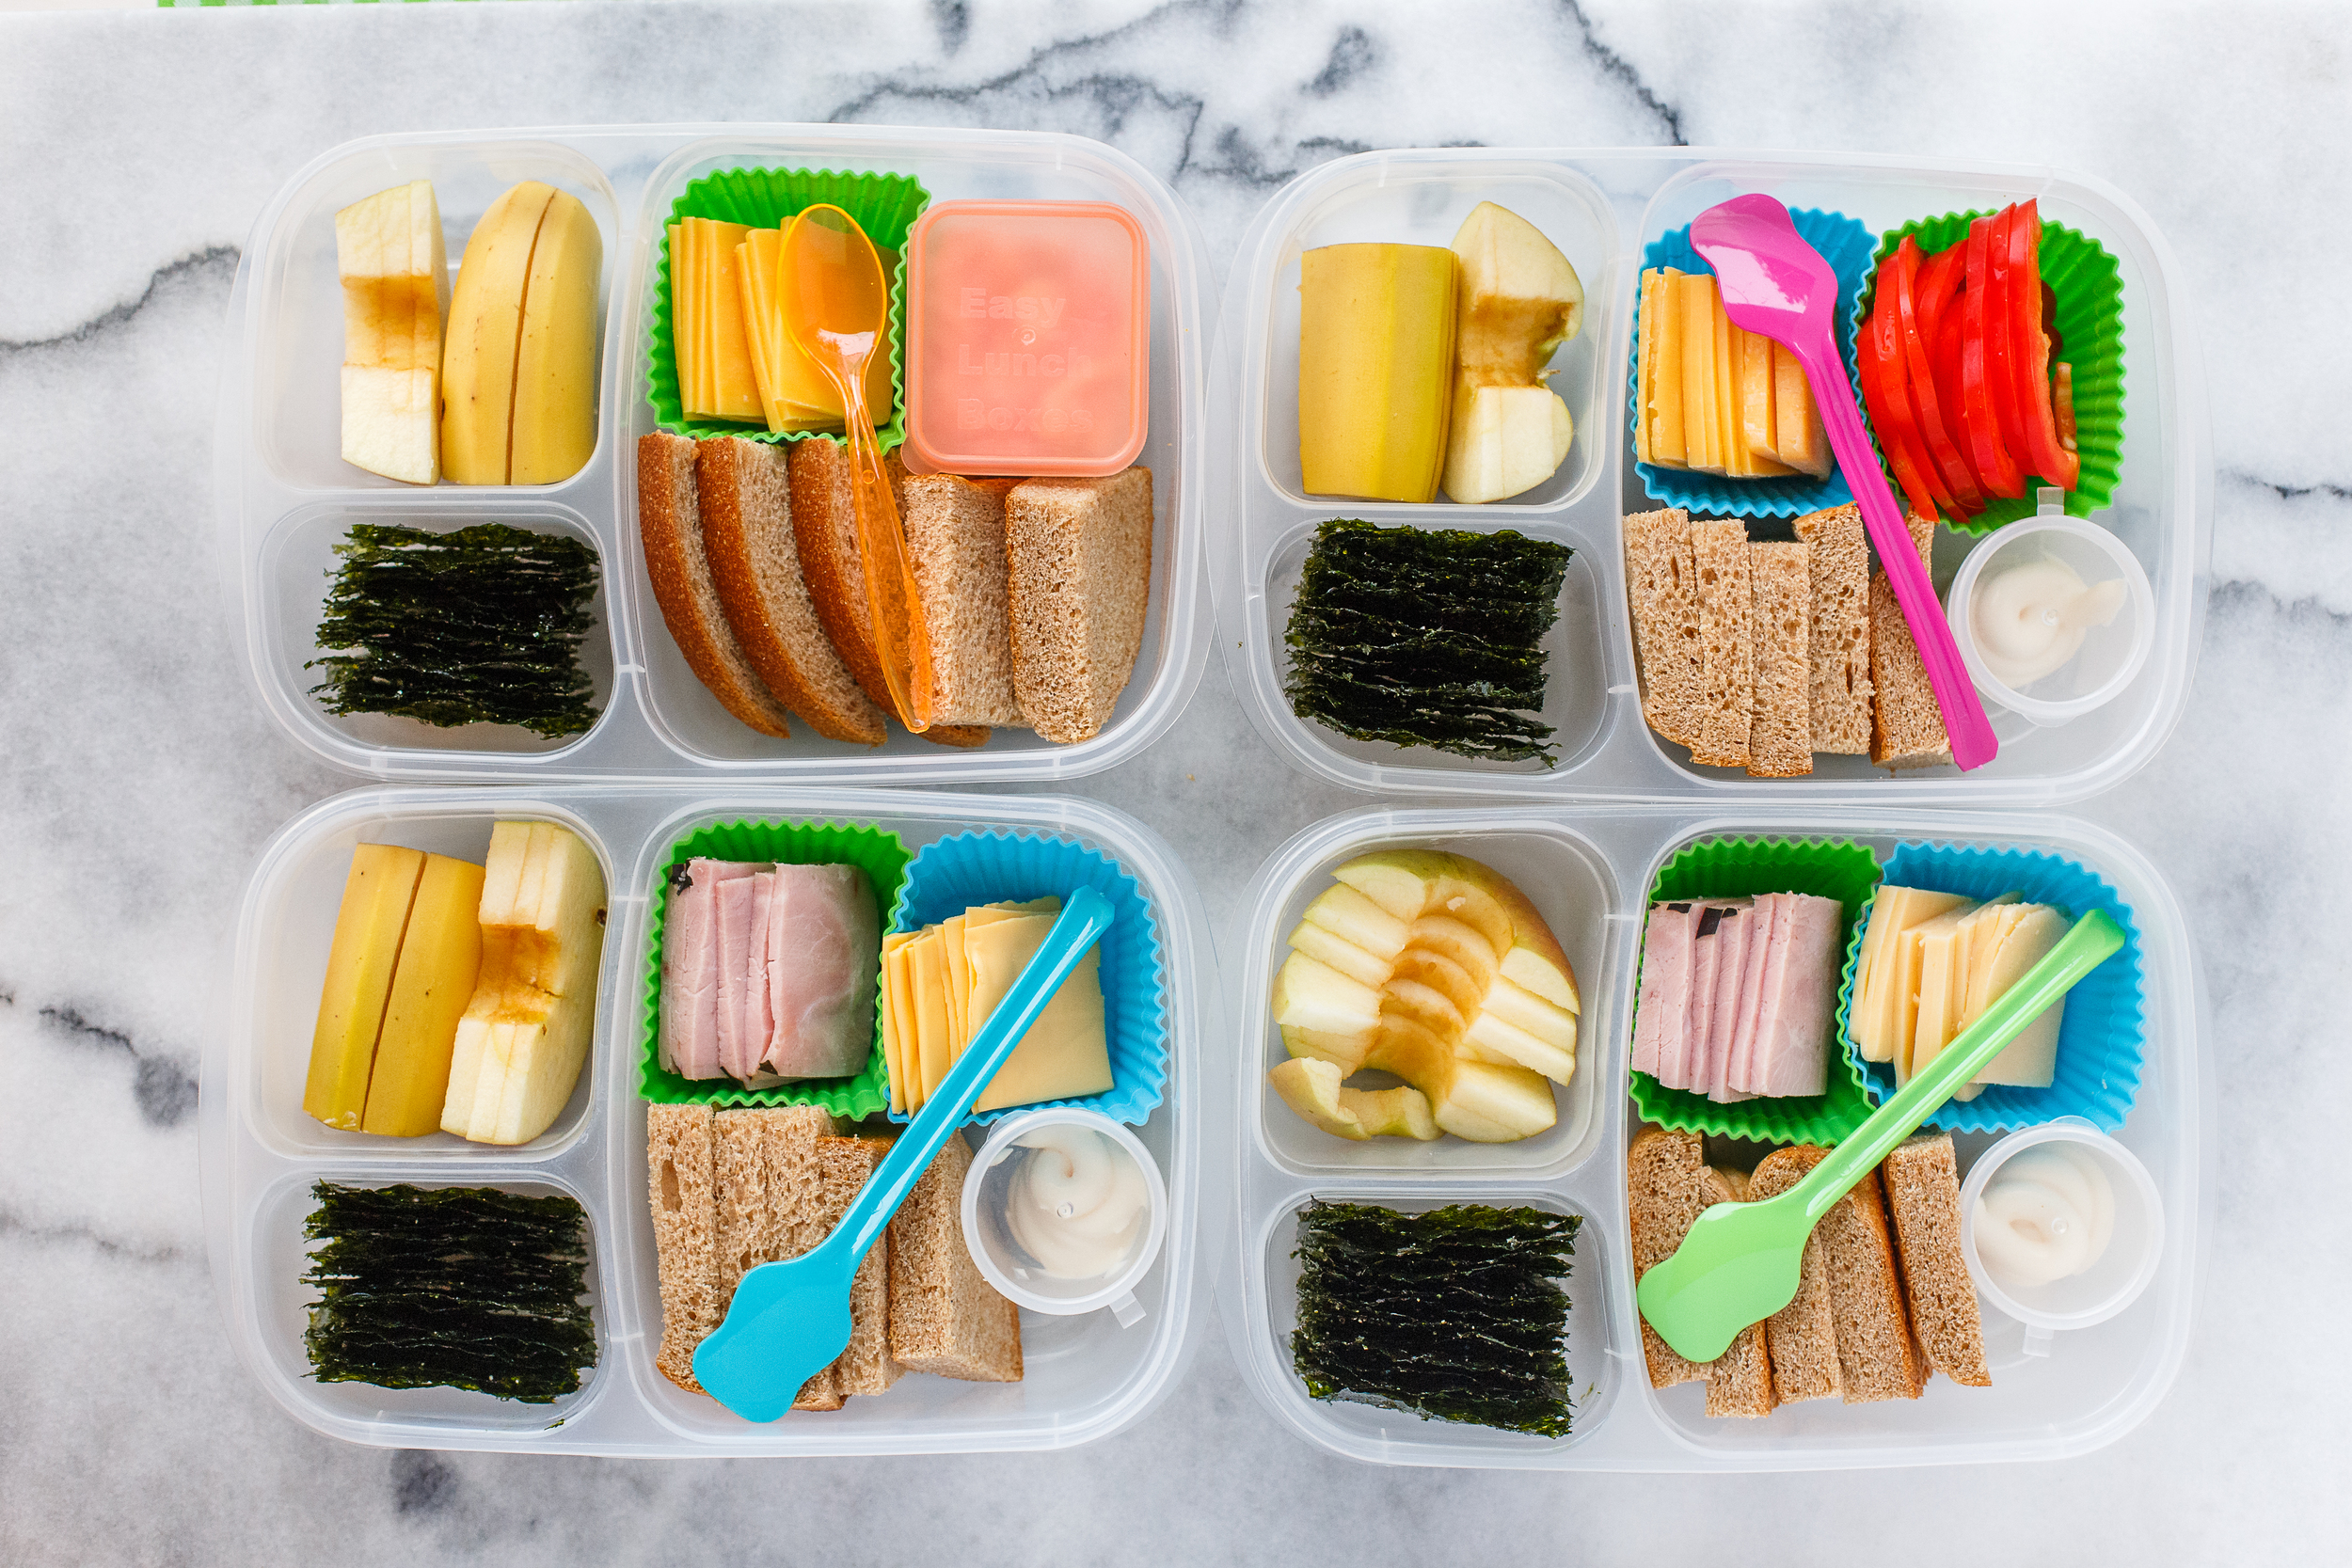 Thursday: make your own sandwich kits! Honey wheat bread, slices of cheese, mayo, two have ham, one has sweet red peppers, and one who doesn't like mayo has a side of yogurt instead. Plus seaweed snacks, apple, and banana.